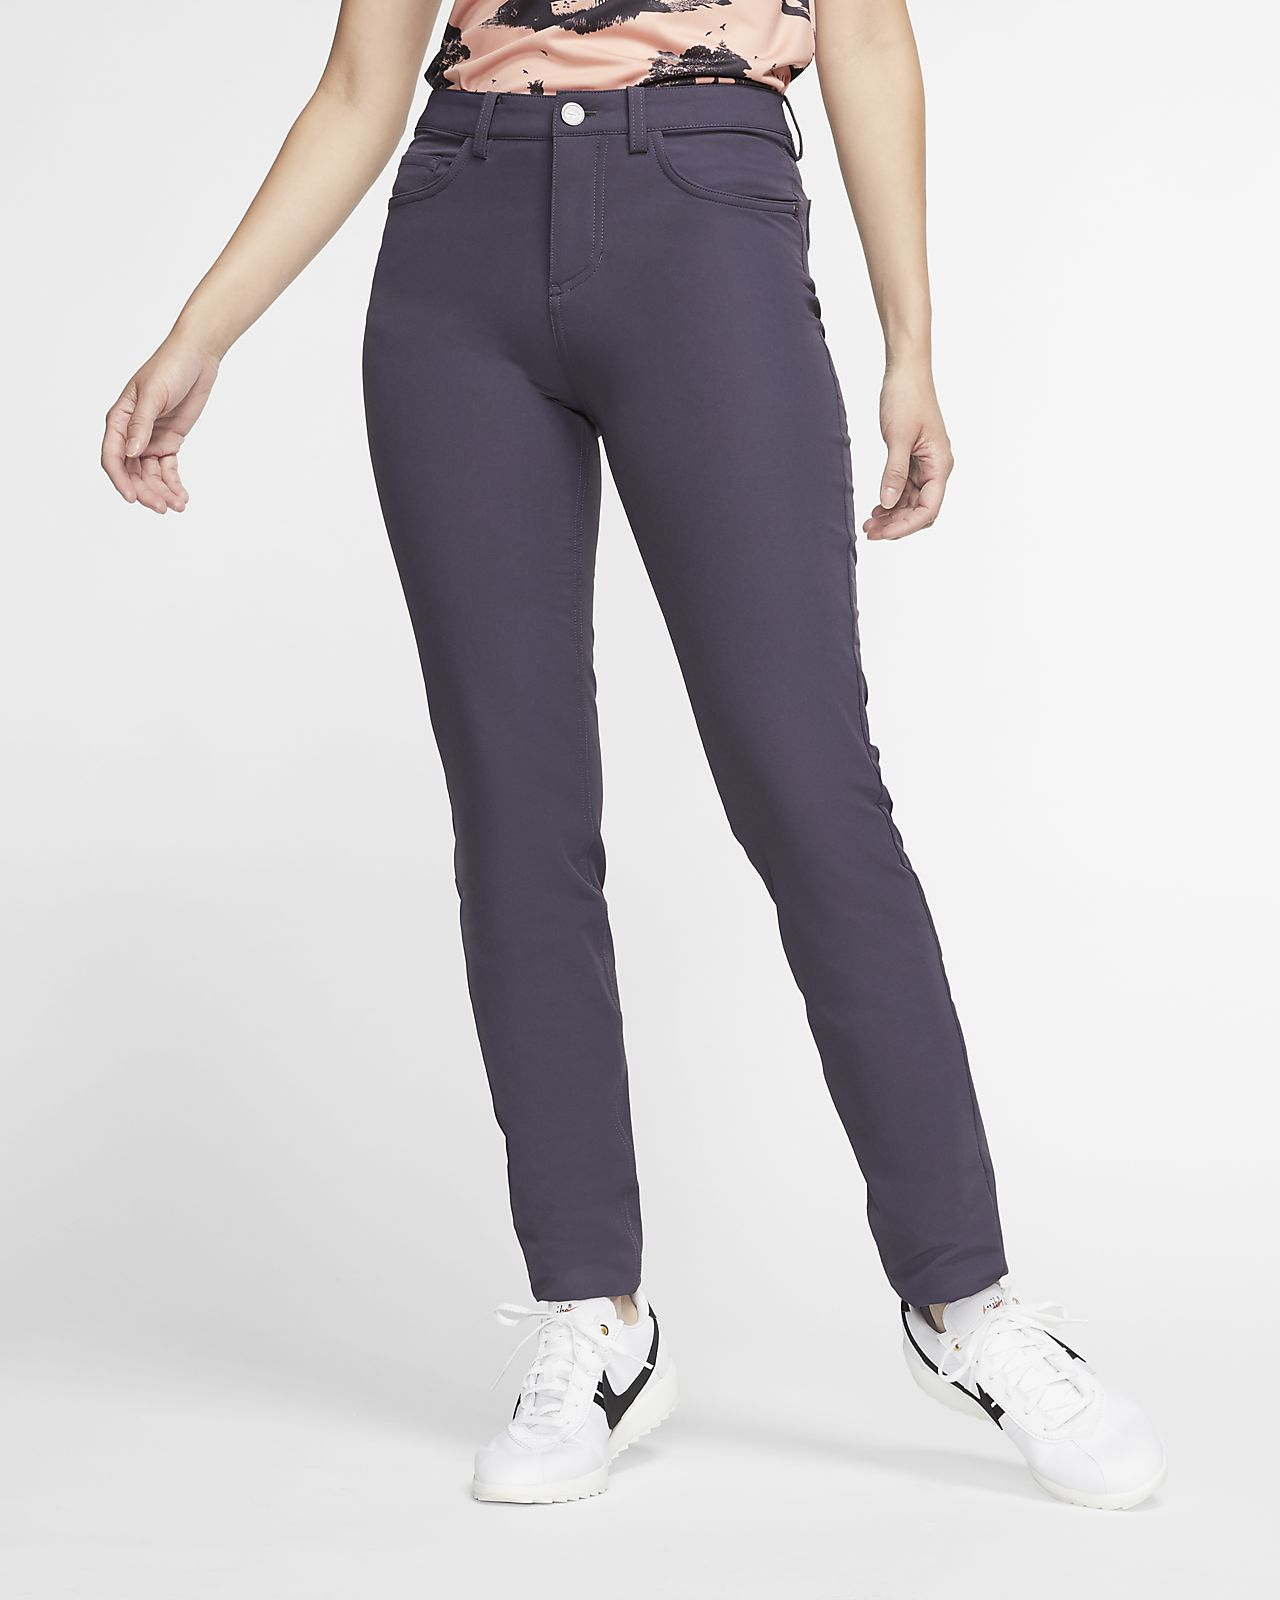 Nike Repel Women's Golf Trousers